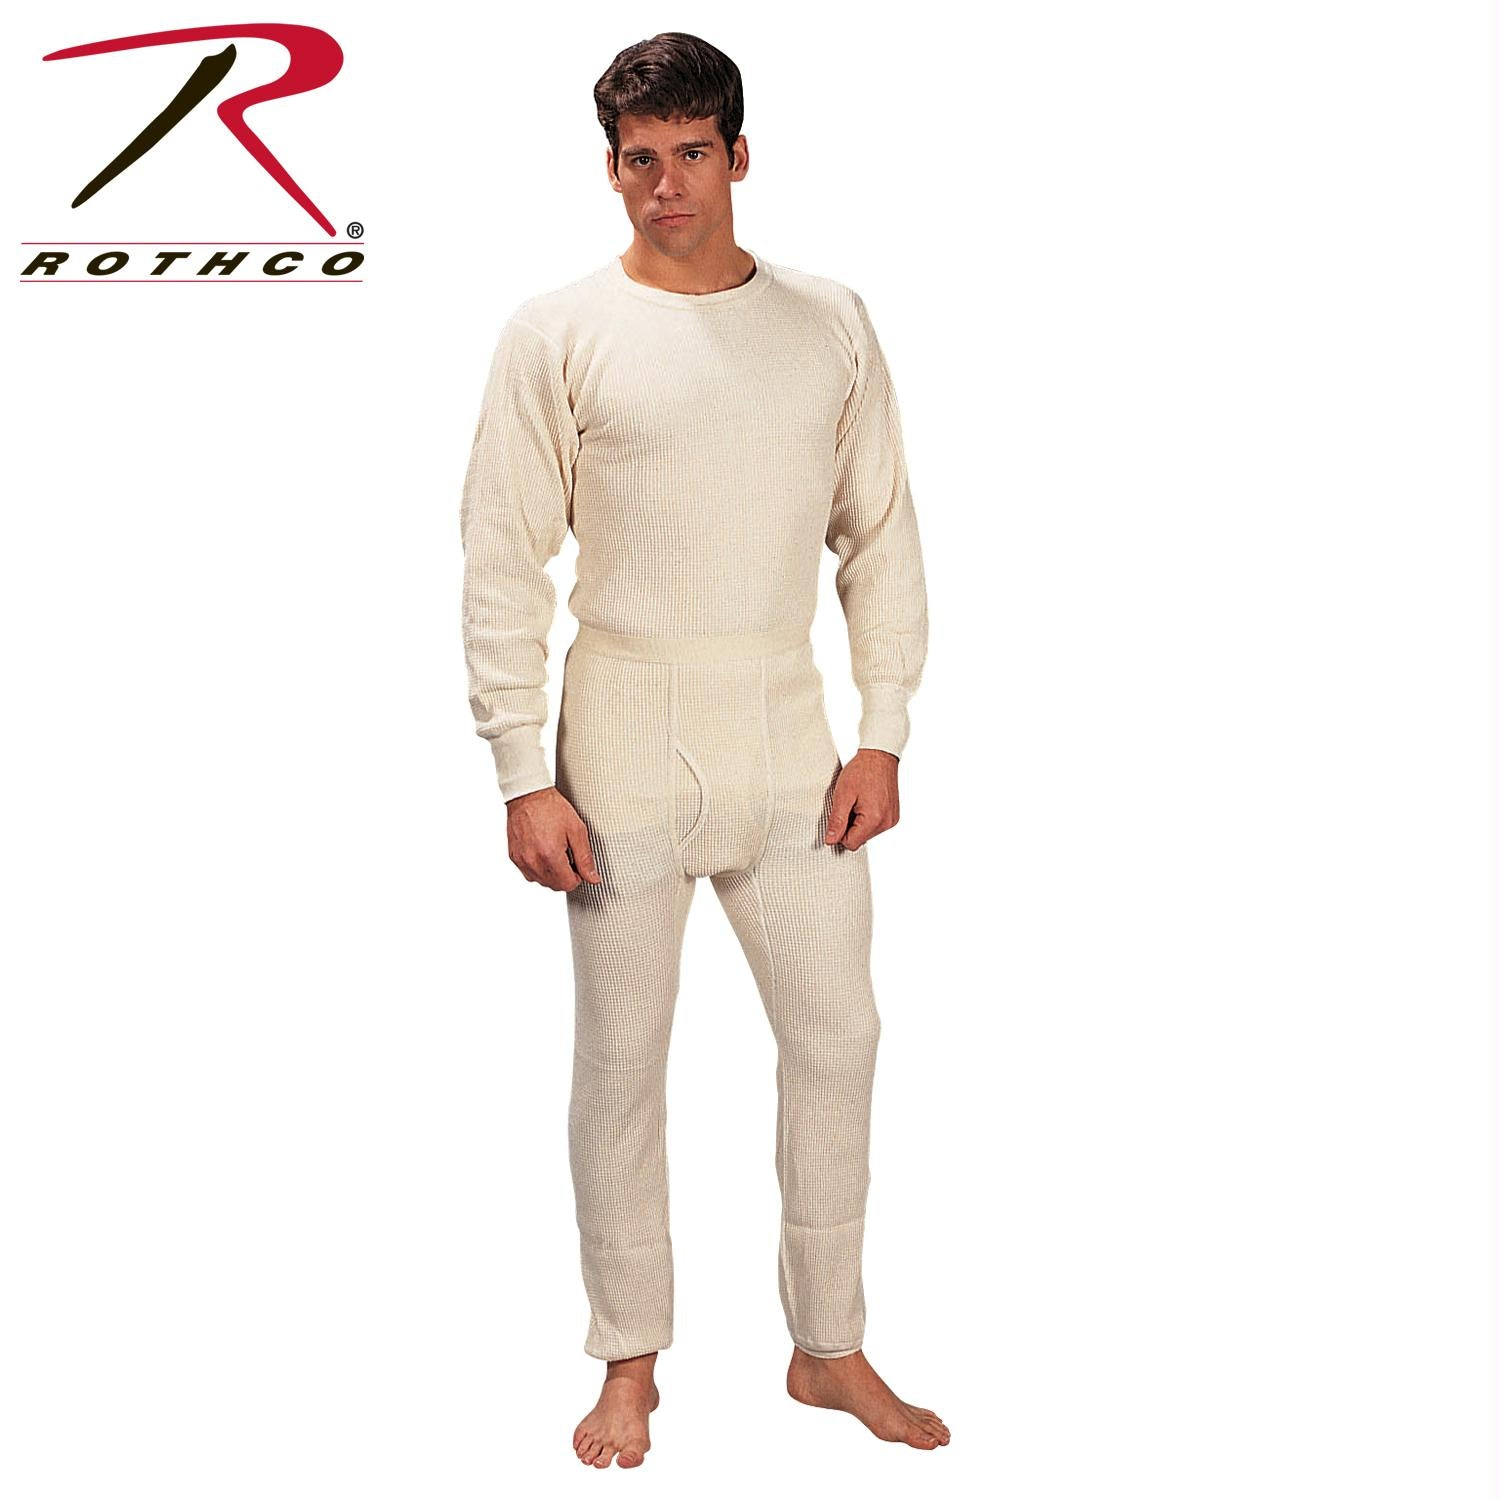 Rothco Extra Heavyweight Thermal Knit Bottoms - 2XL